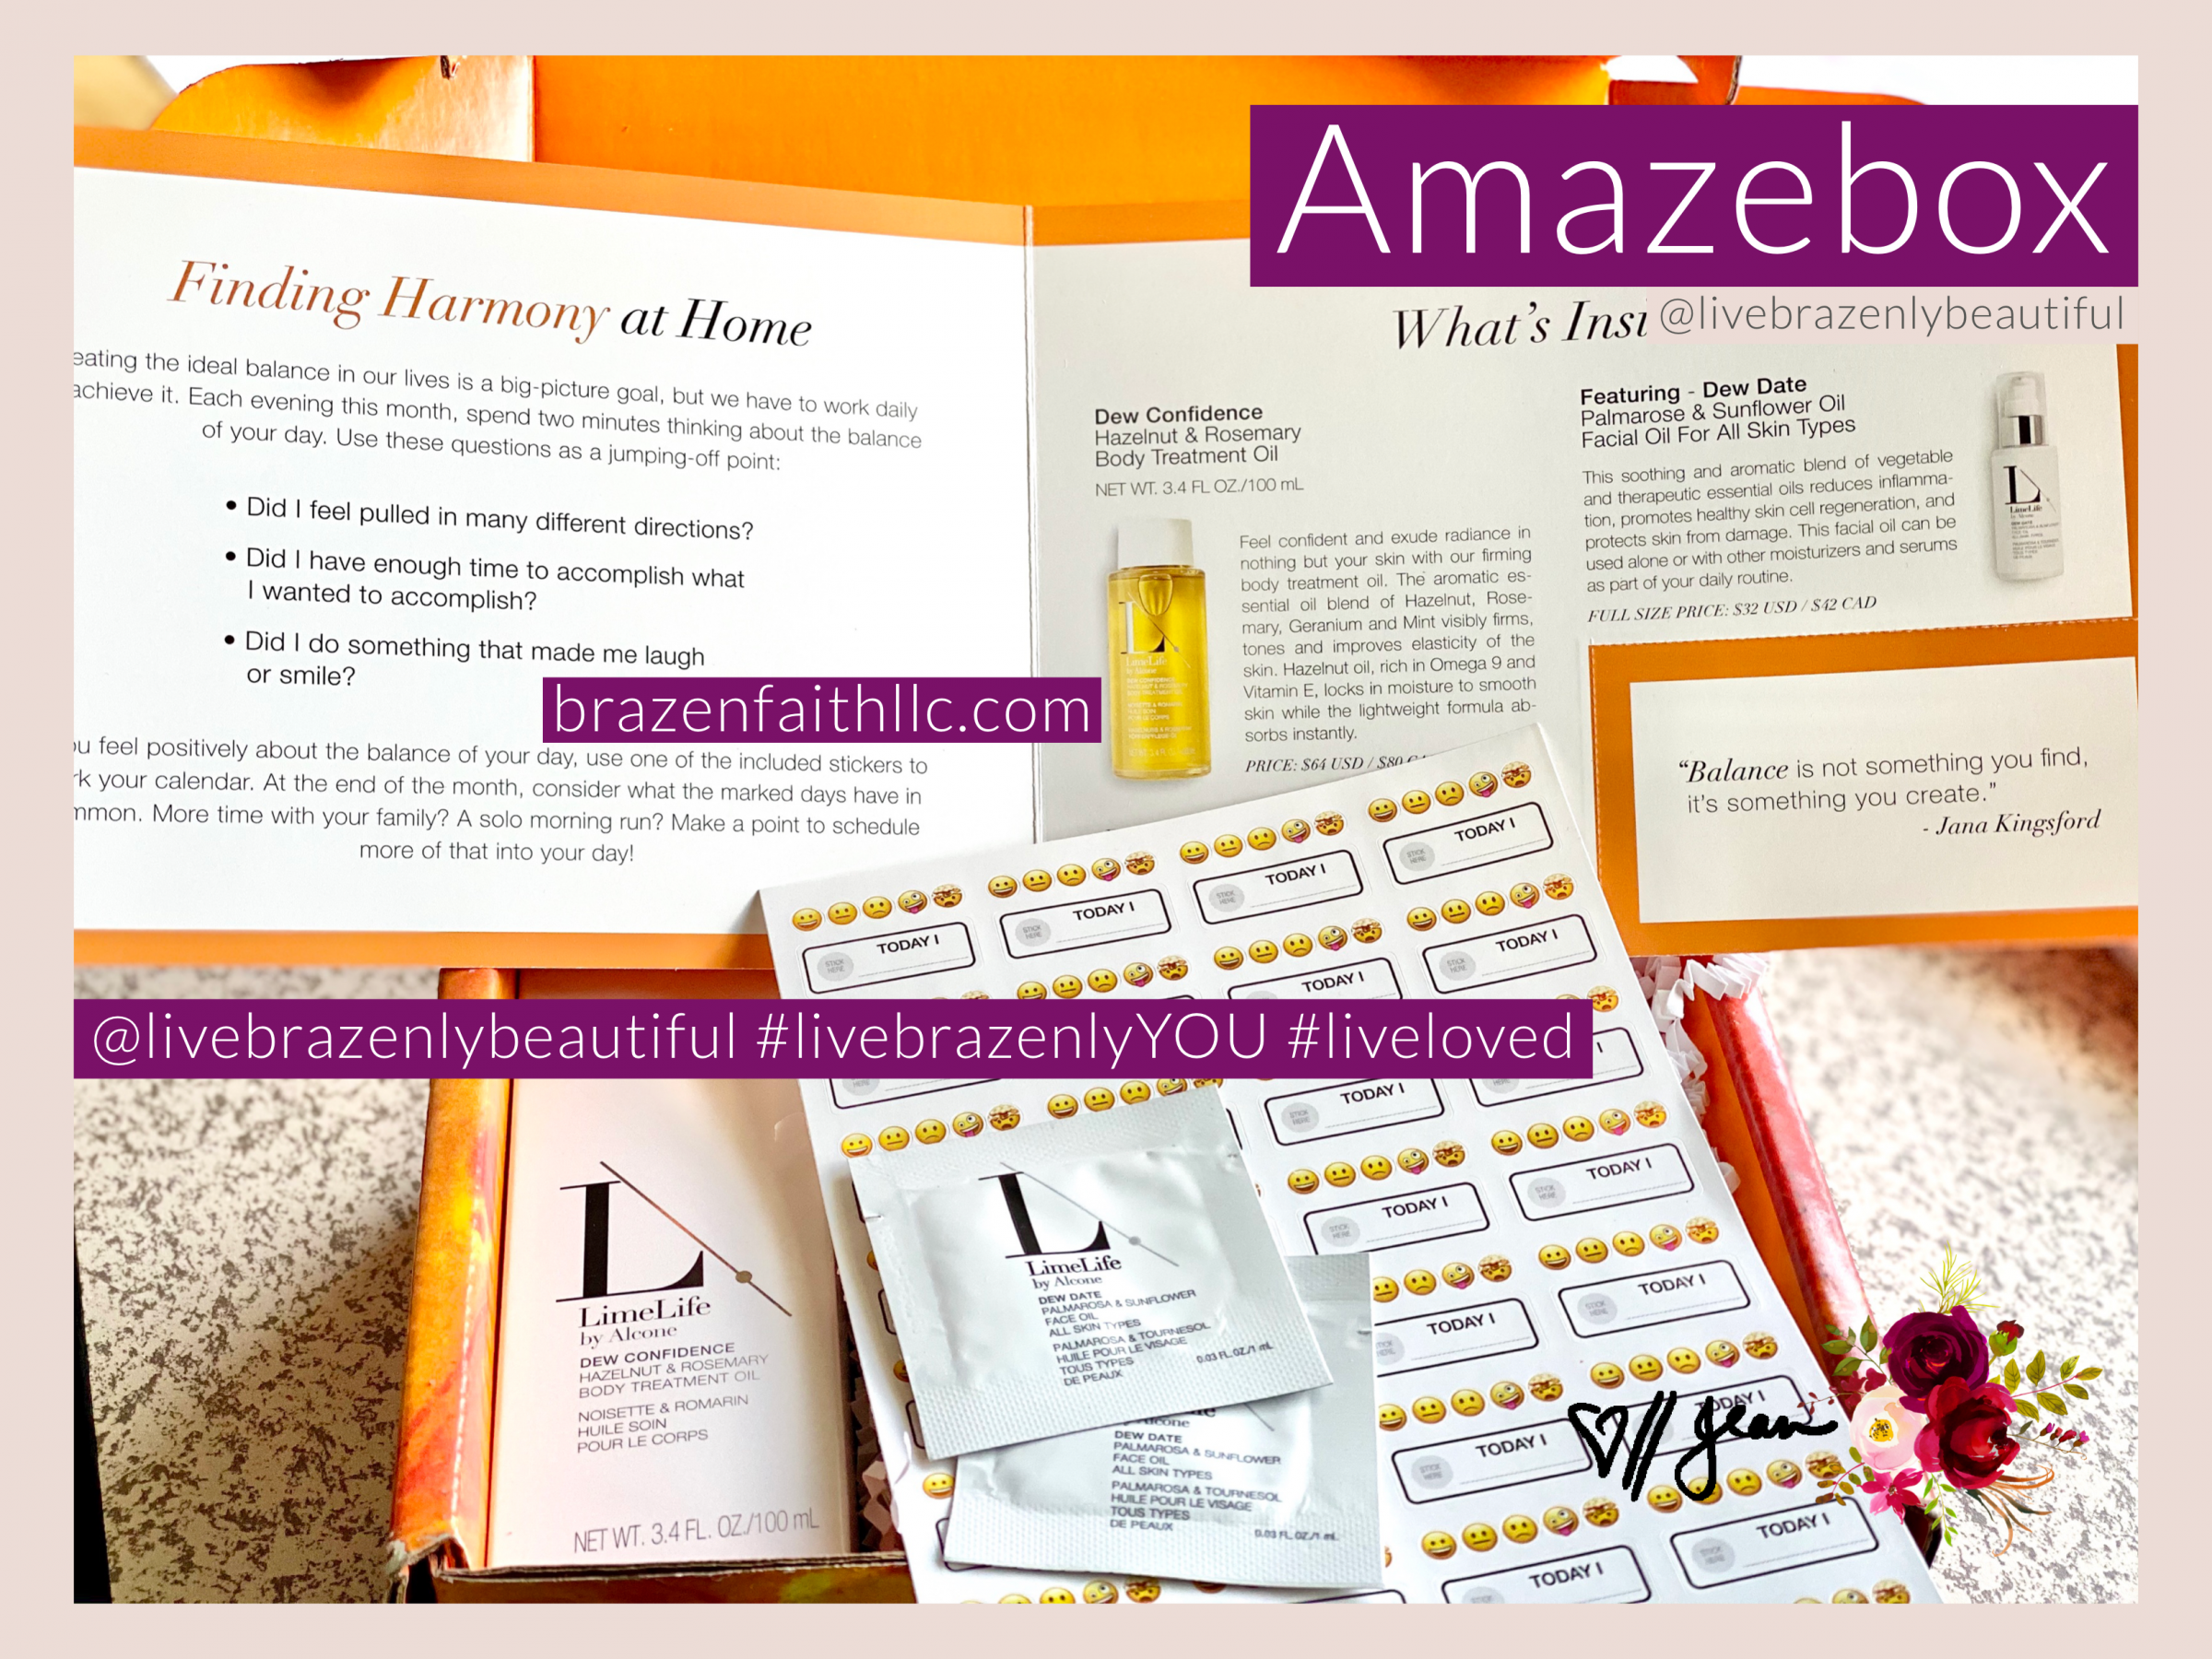 LimeLife by Alcone Subscription- AmazeBox